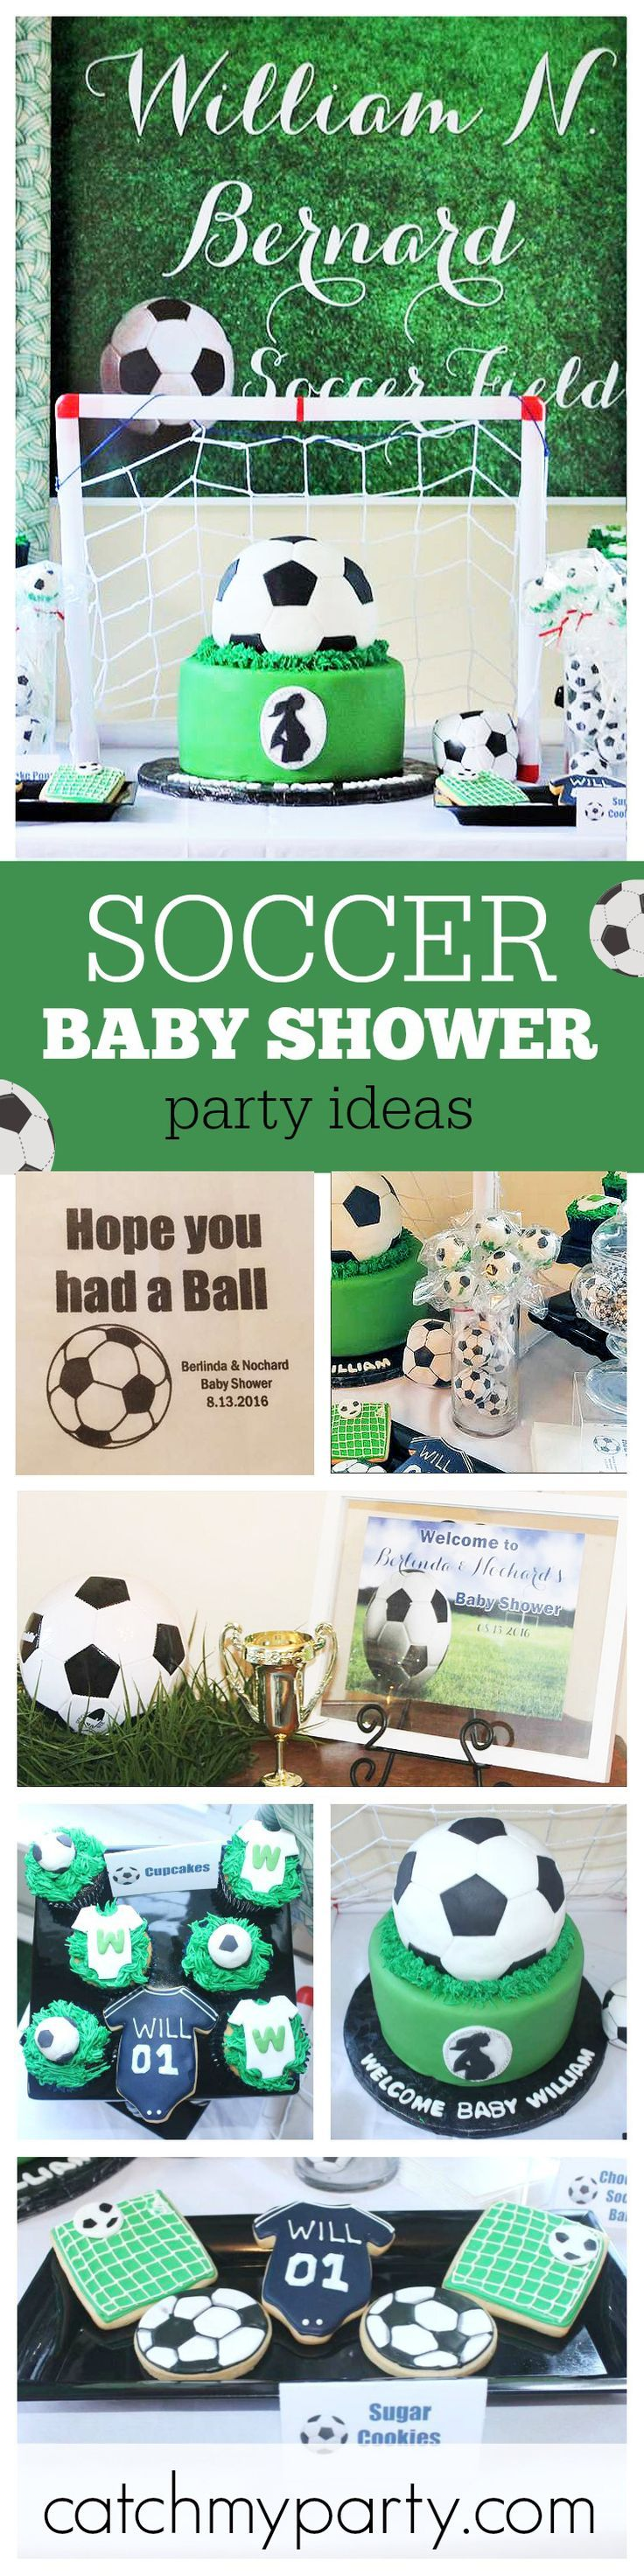 Soccer fans are definitely going to want a soccer baby shower for their little baby boys! The cupcakes and cookies are adorable! See more party ideas at http://CatchMyParty.com